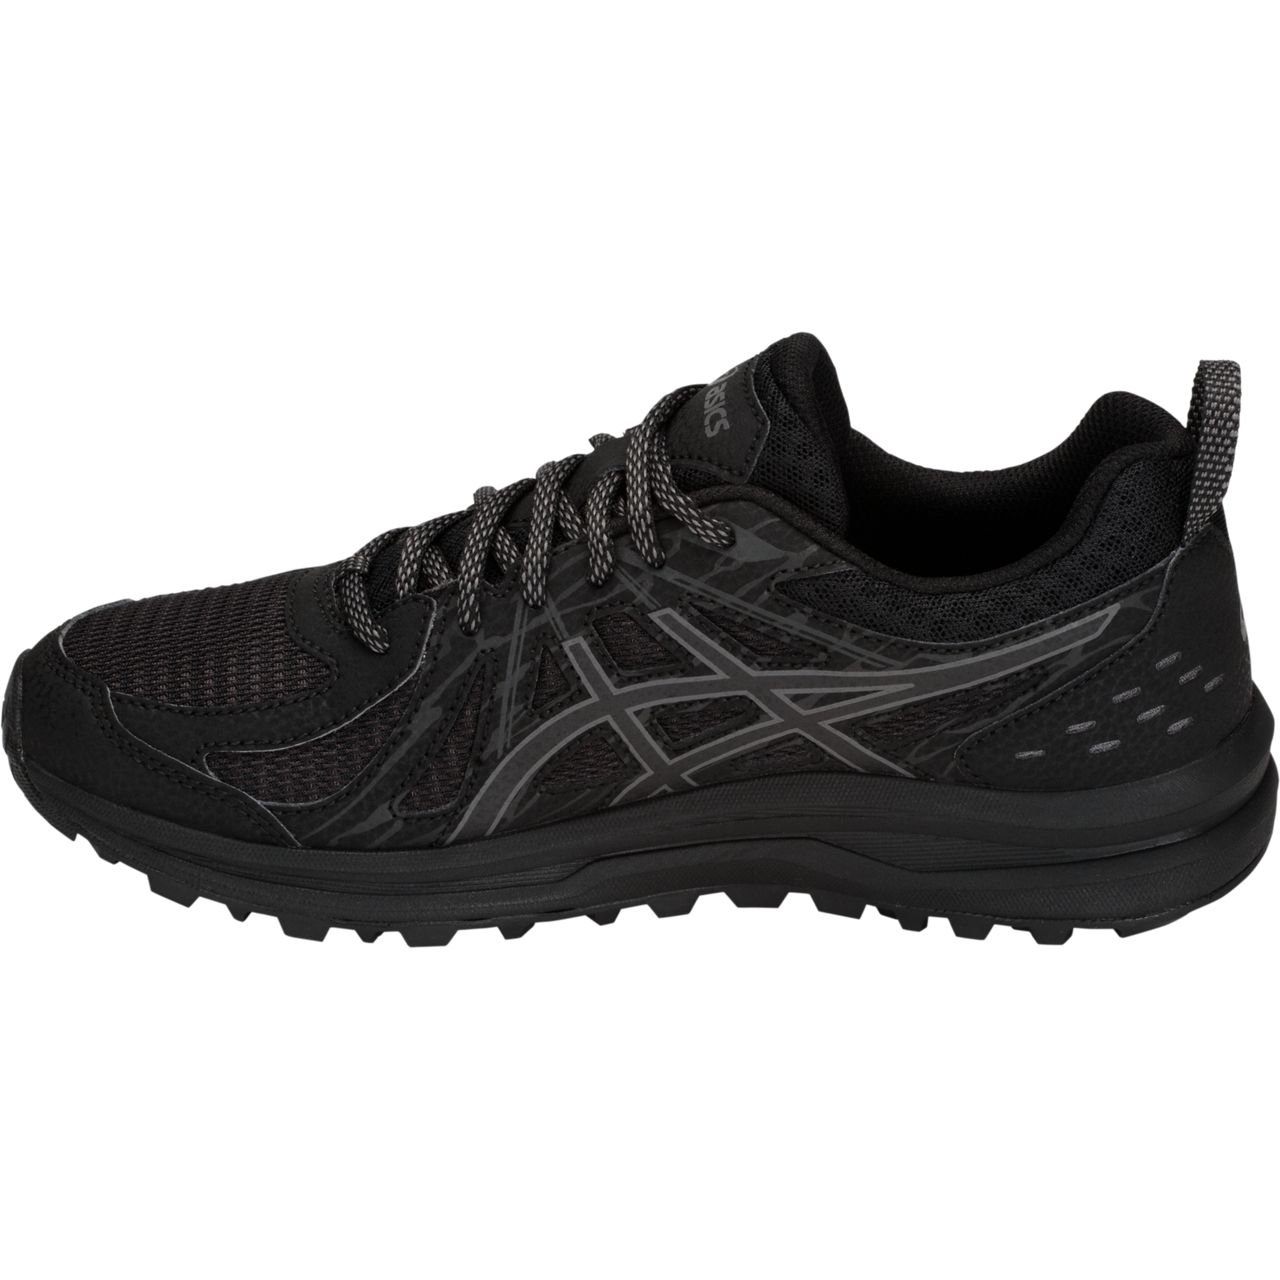 ASICS Women's Frequent Trail D Running Shoe B07884L2B5 6 D Trail US|Black/Carbon 2f8721